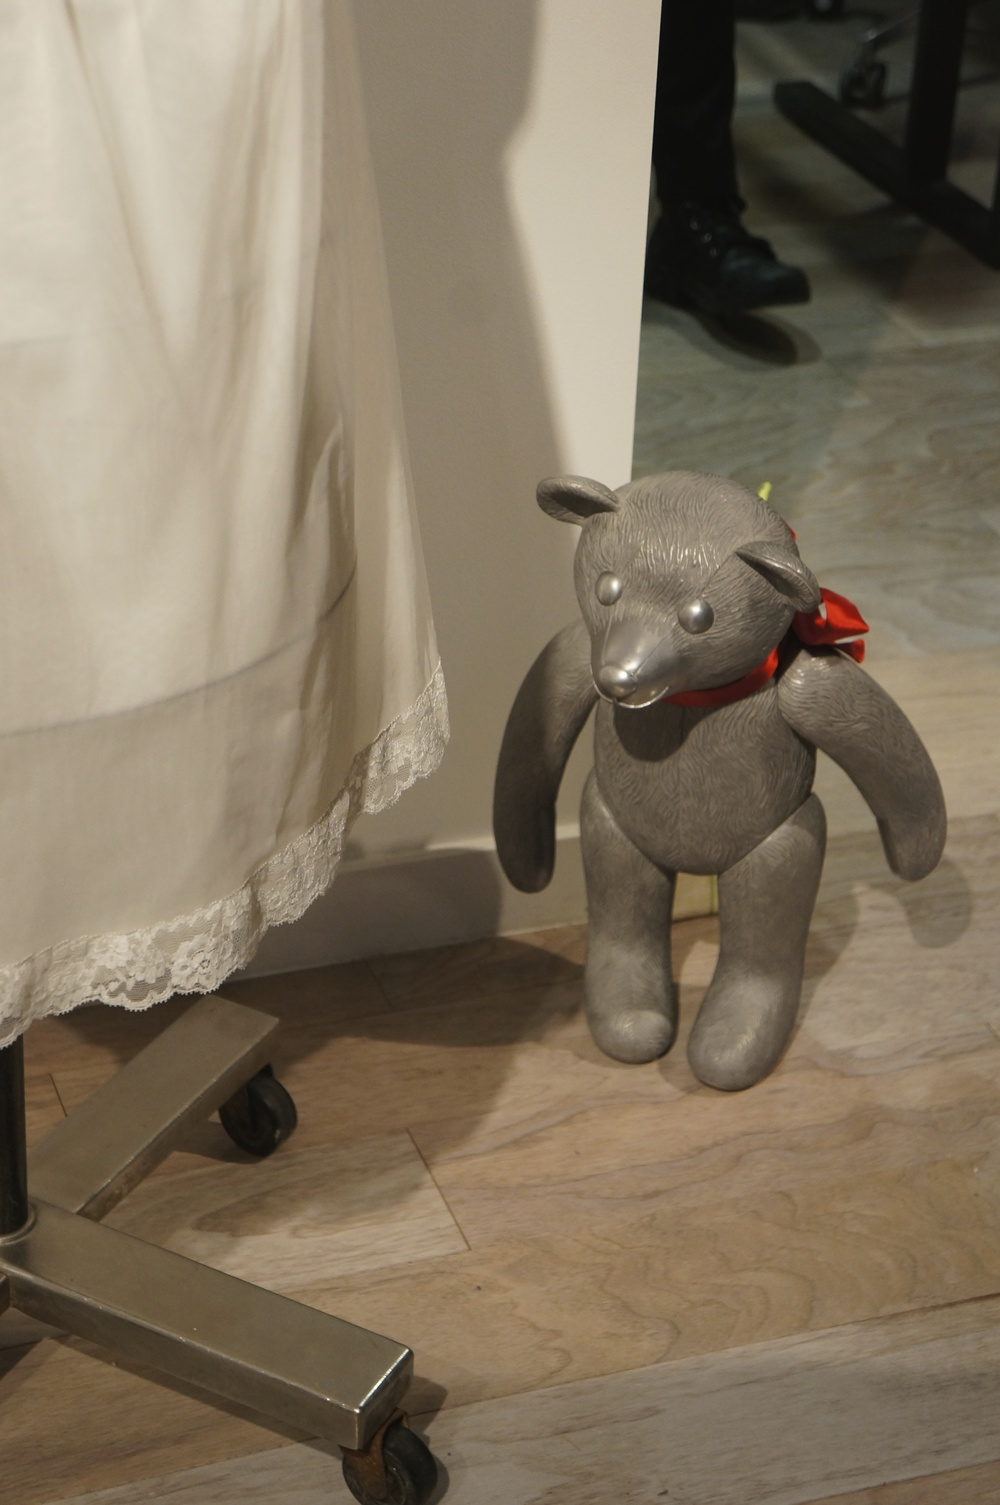 Mayumi Amada's cast aluminum teddy bear (with movable parts) made an appearance at the opening